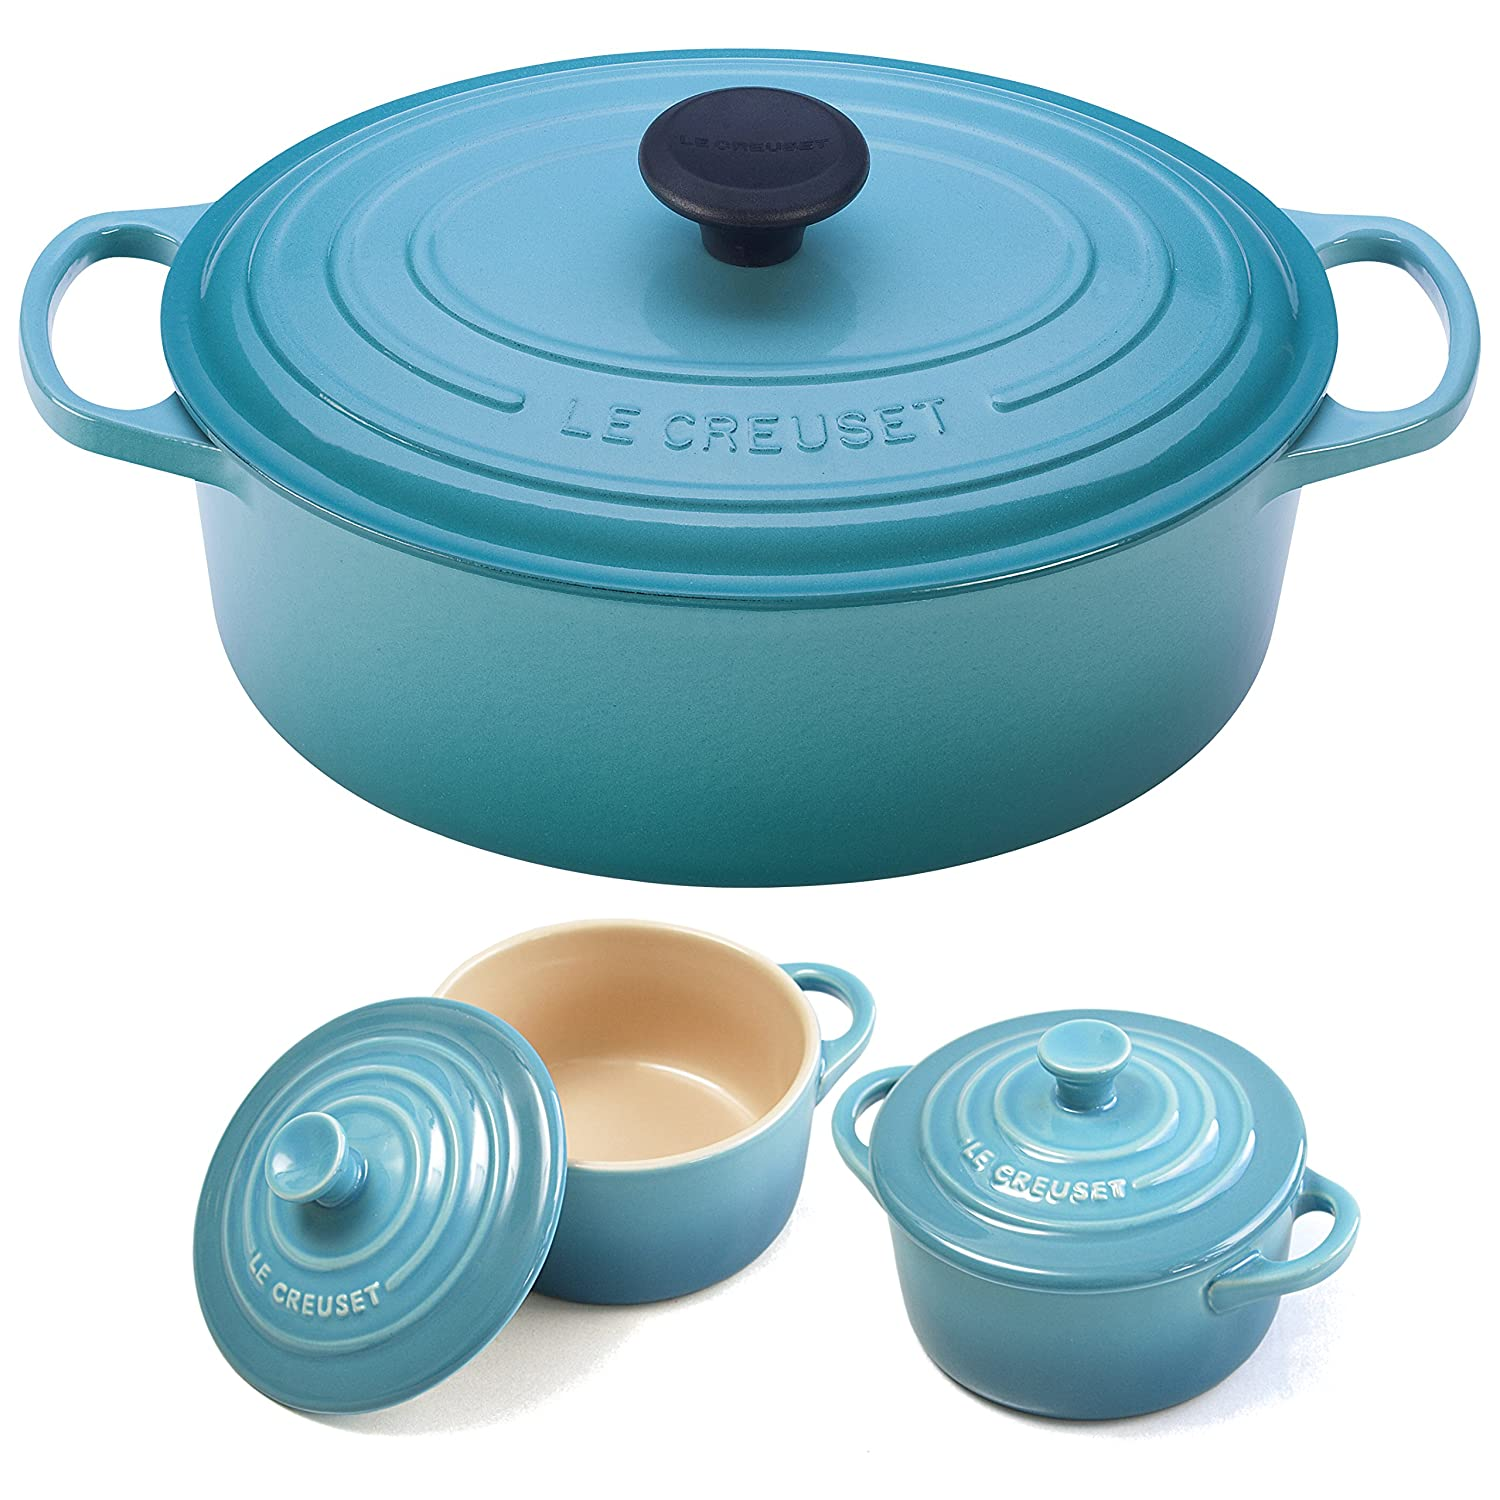 Le Creuset Signature Caribbean Enameled Cast Iron 5 Quart Oval French Oven with 2 Free Stoneware Cocottes